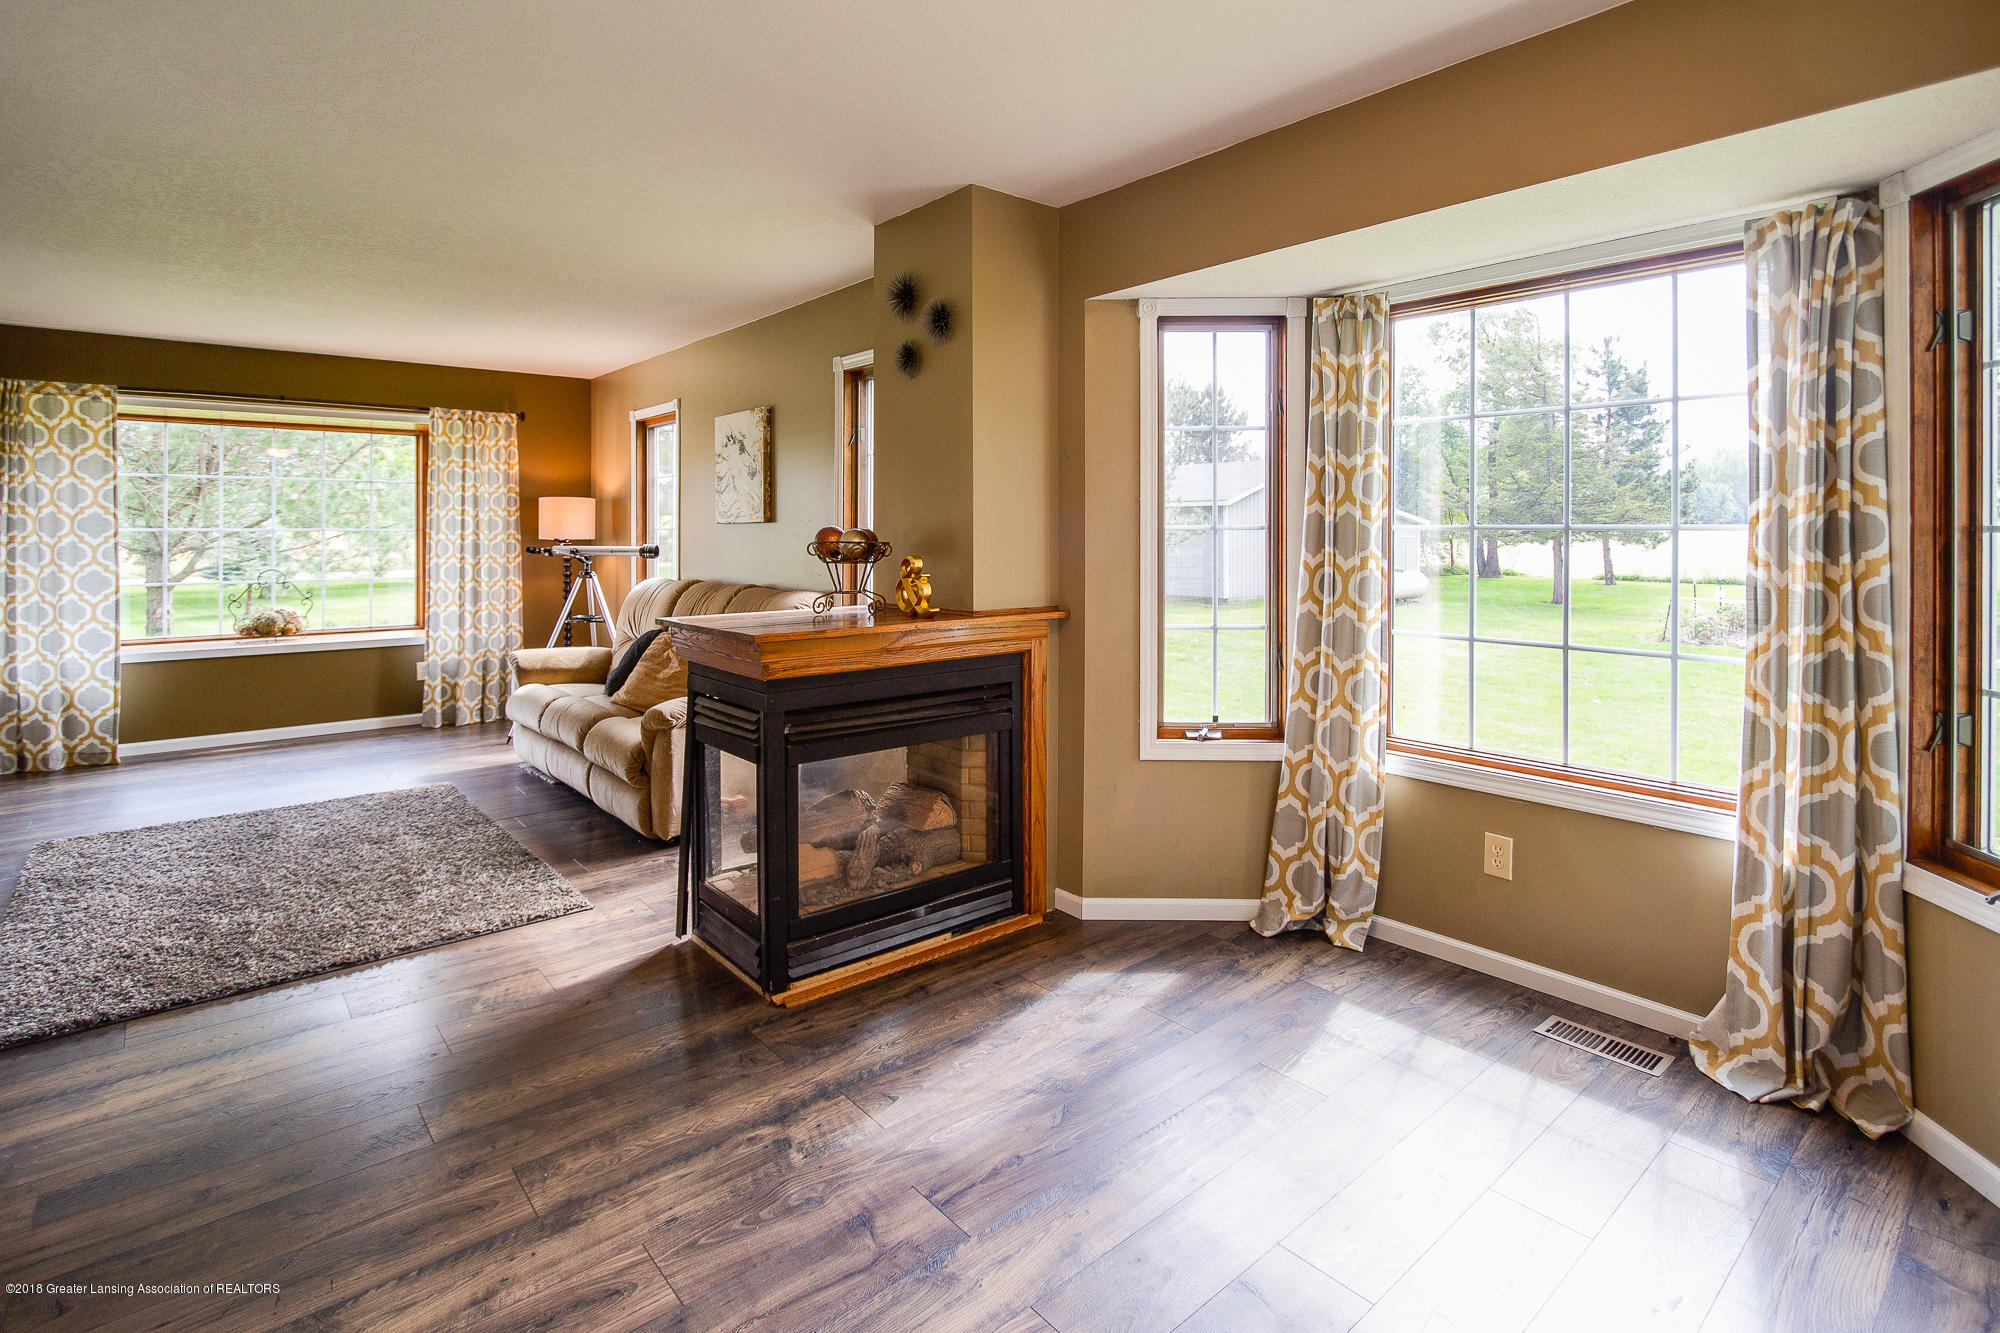 3763 N Airport Rd - Formal Dining Room - 15